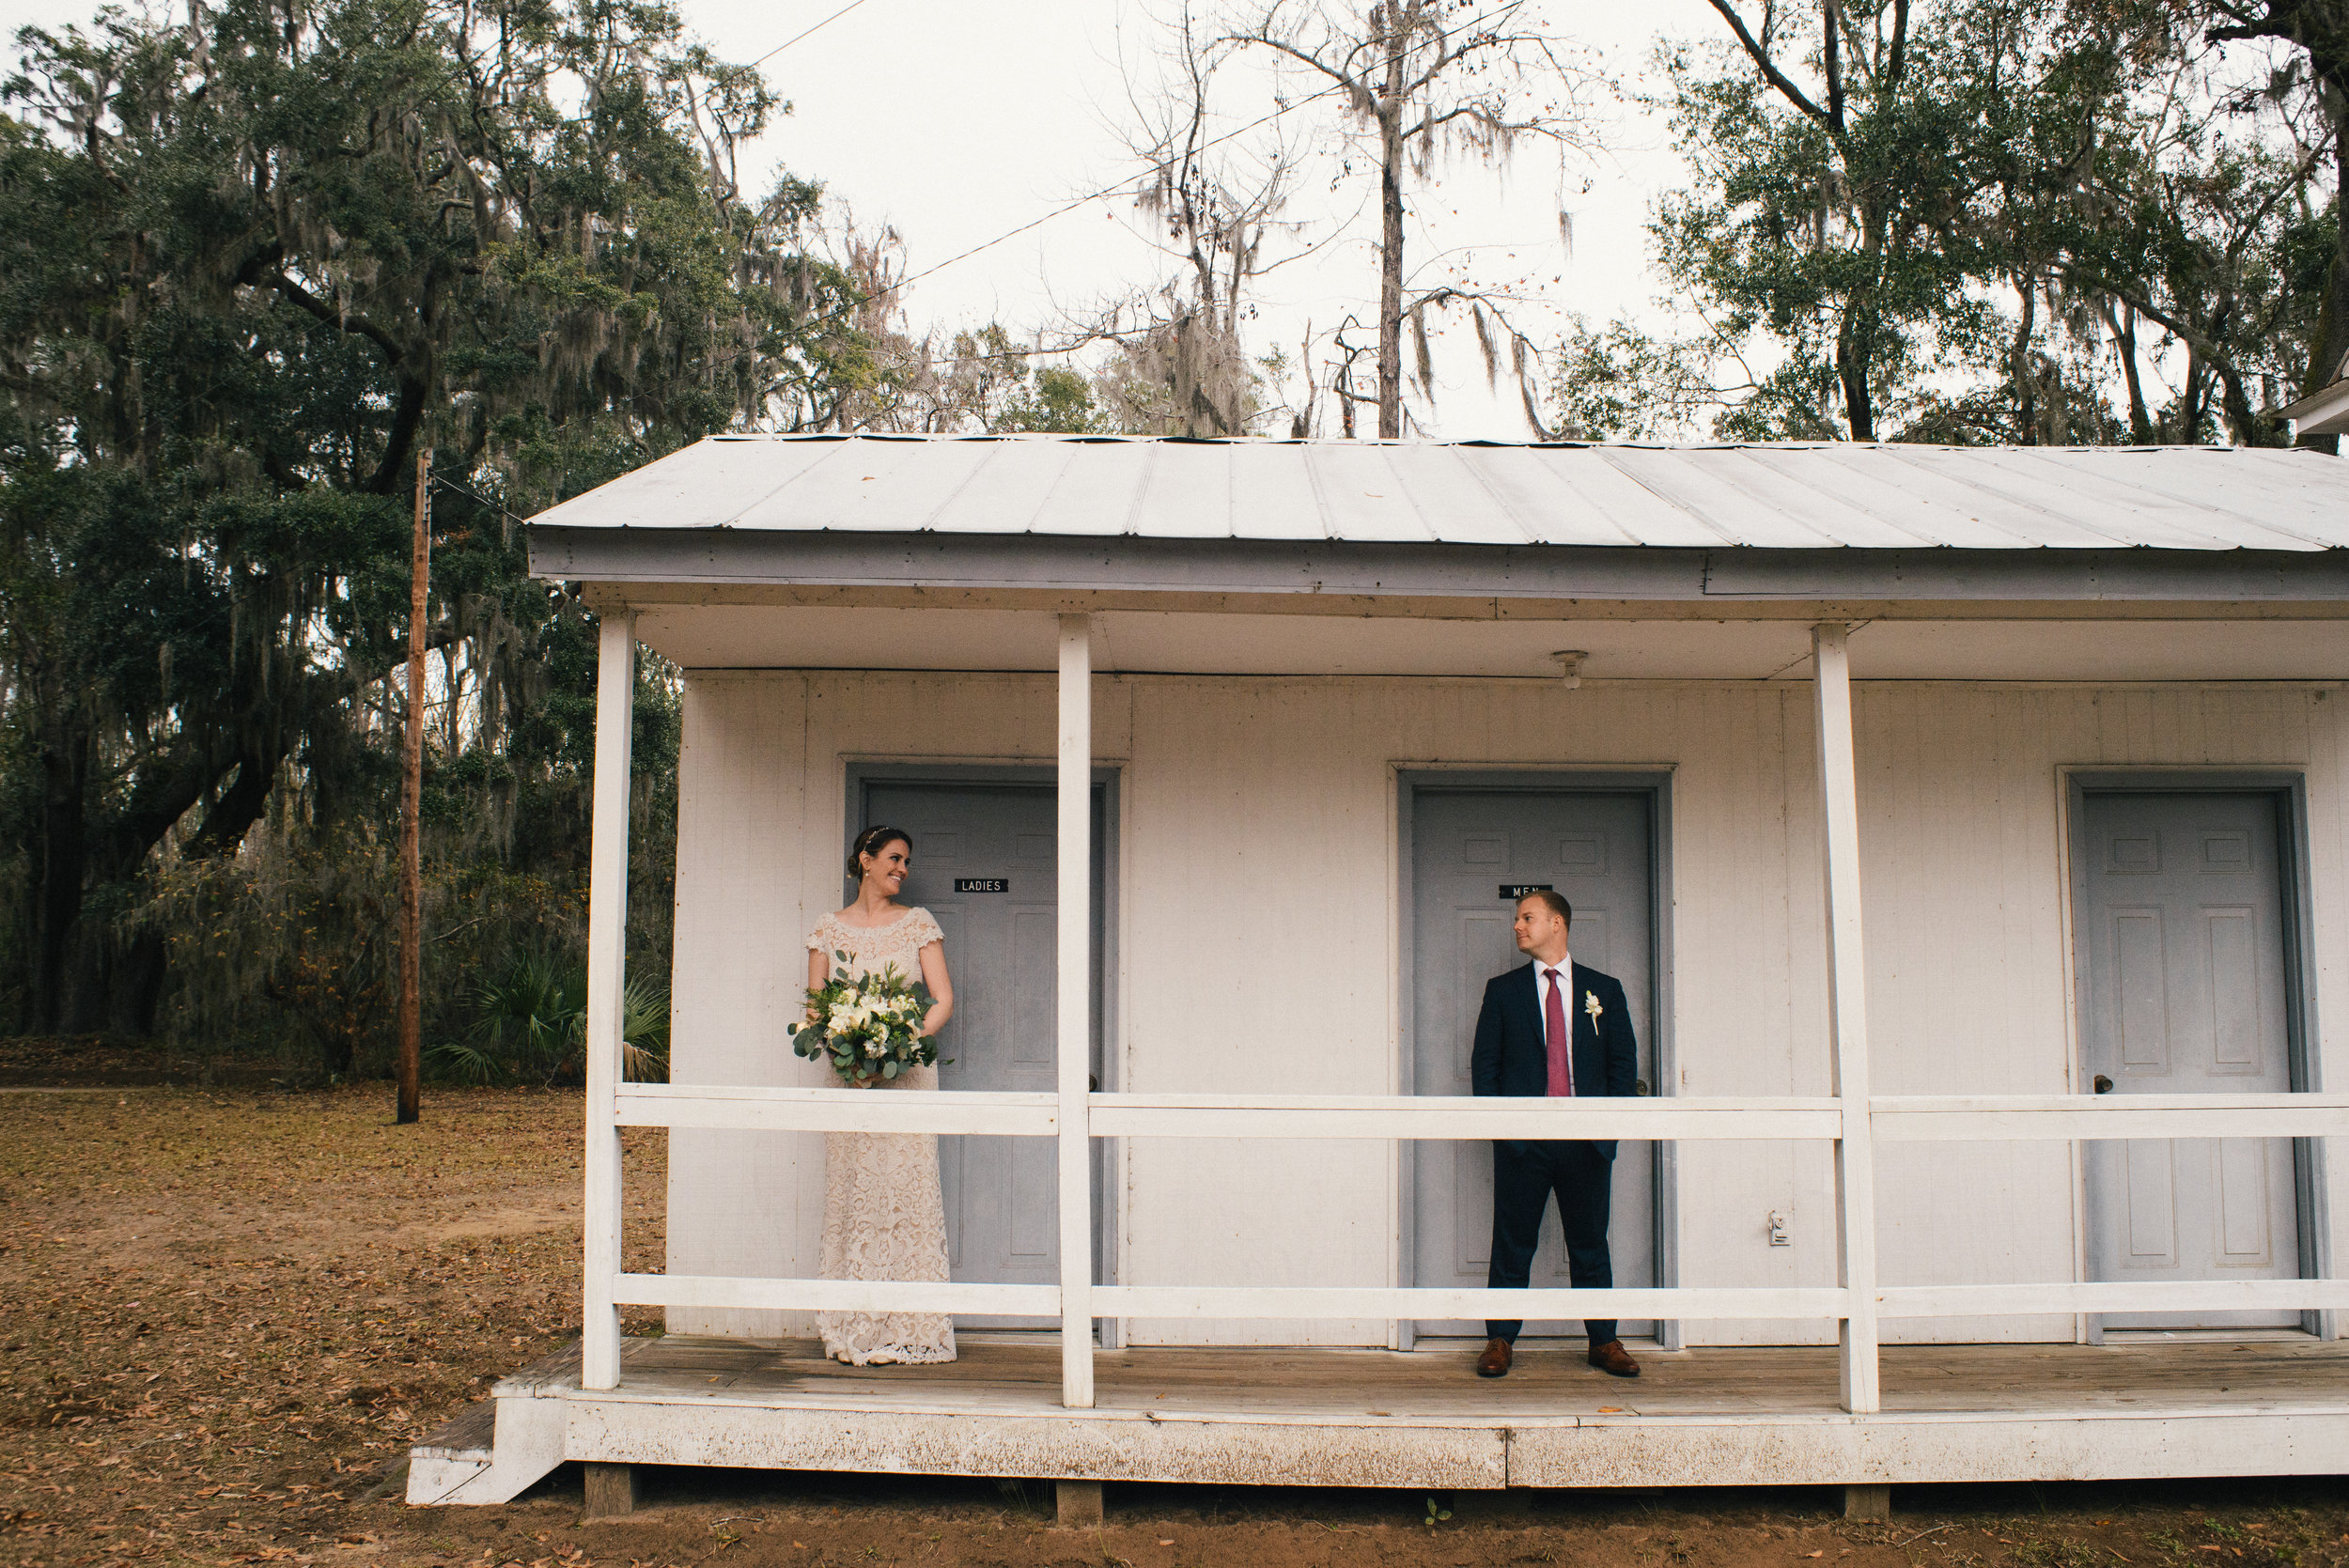 emily-and-david-daufuskie-island-wedding-december-wedding-meg-hill-photo- (166 of 728).jpg